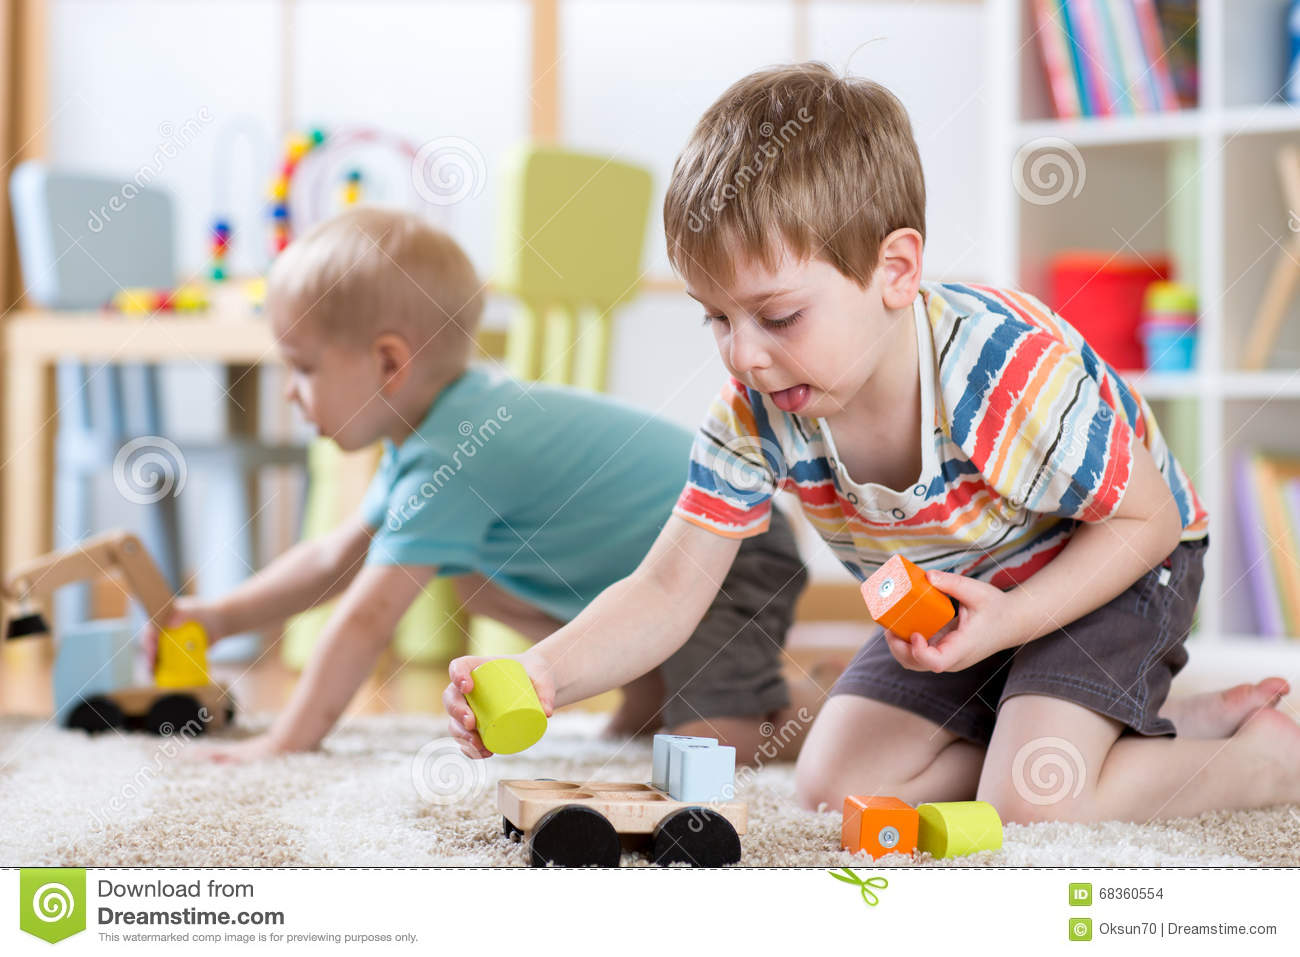 Kinder Garden: Children Playing With Toys In Kindergarten Or Daycare Or